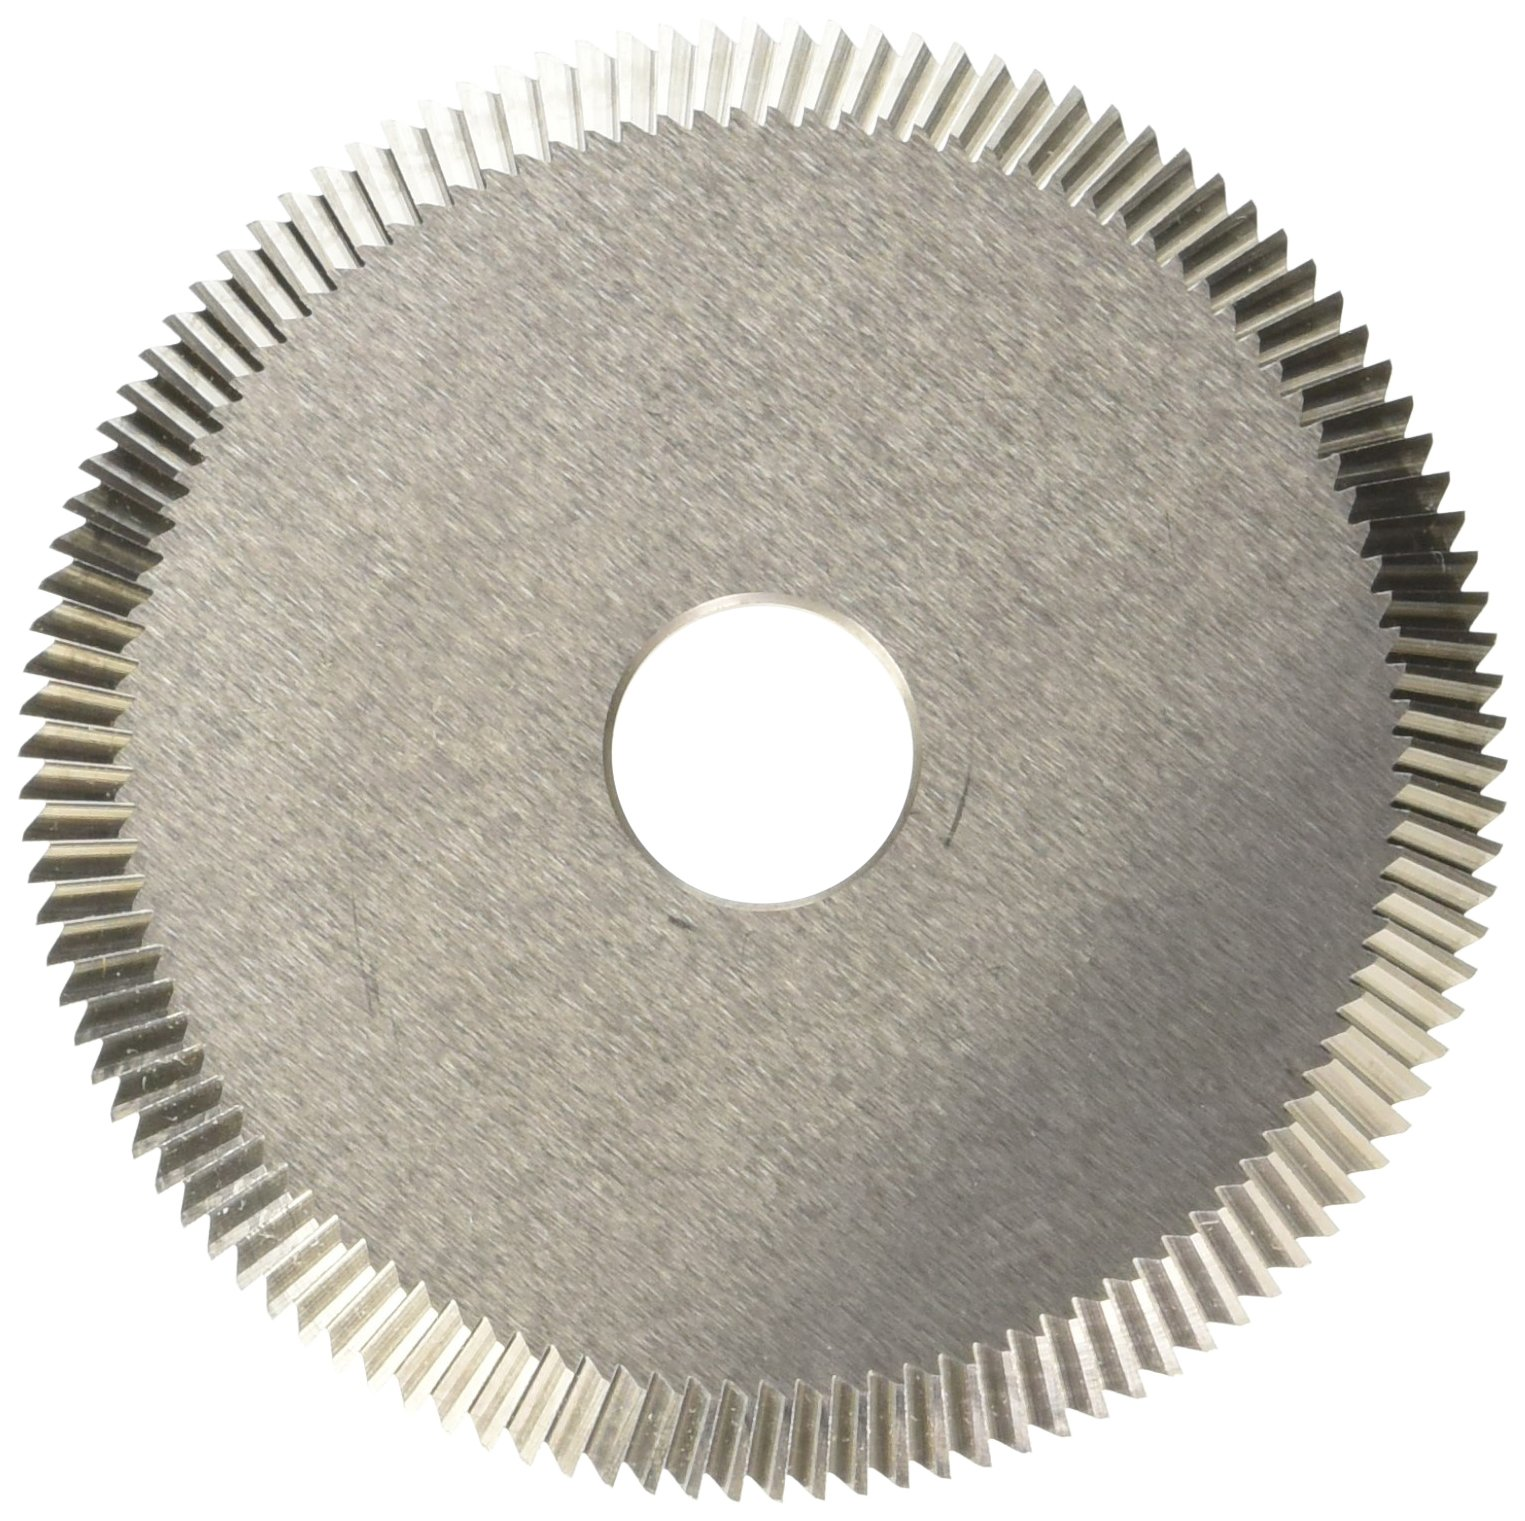 Cheap Ilco Key Cutter, find Ilco Key Cutter deals on line at